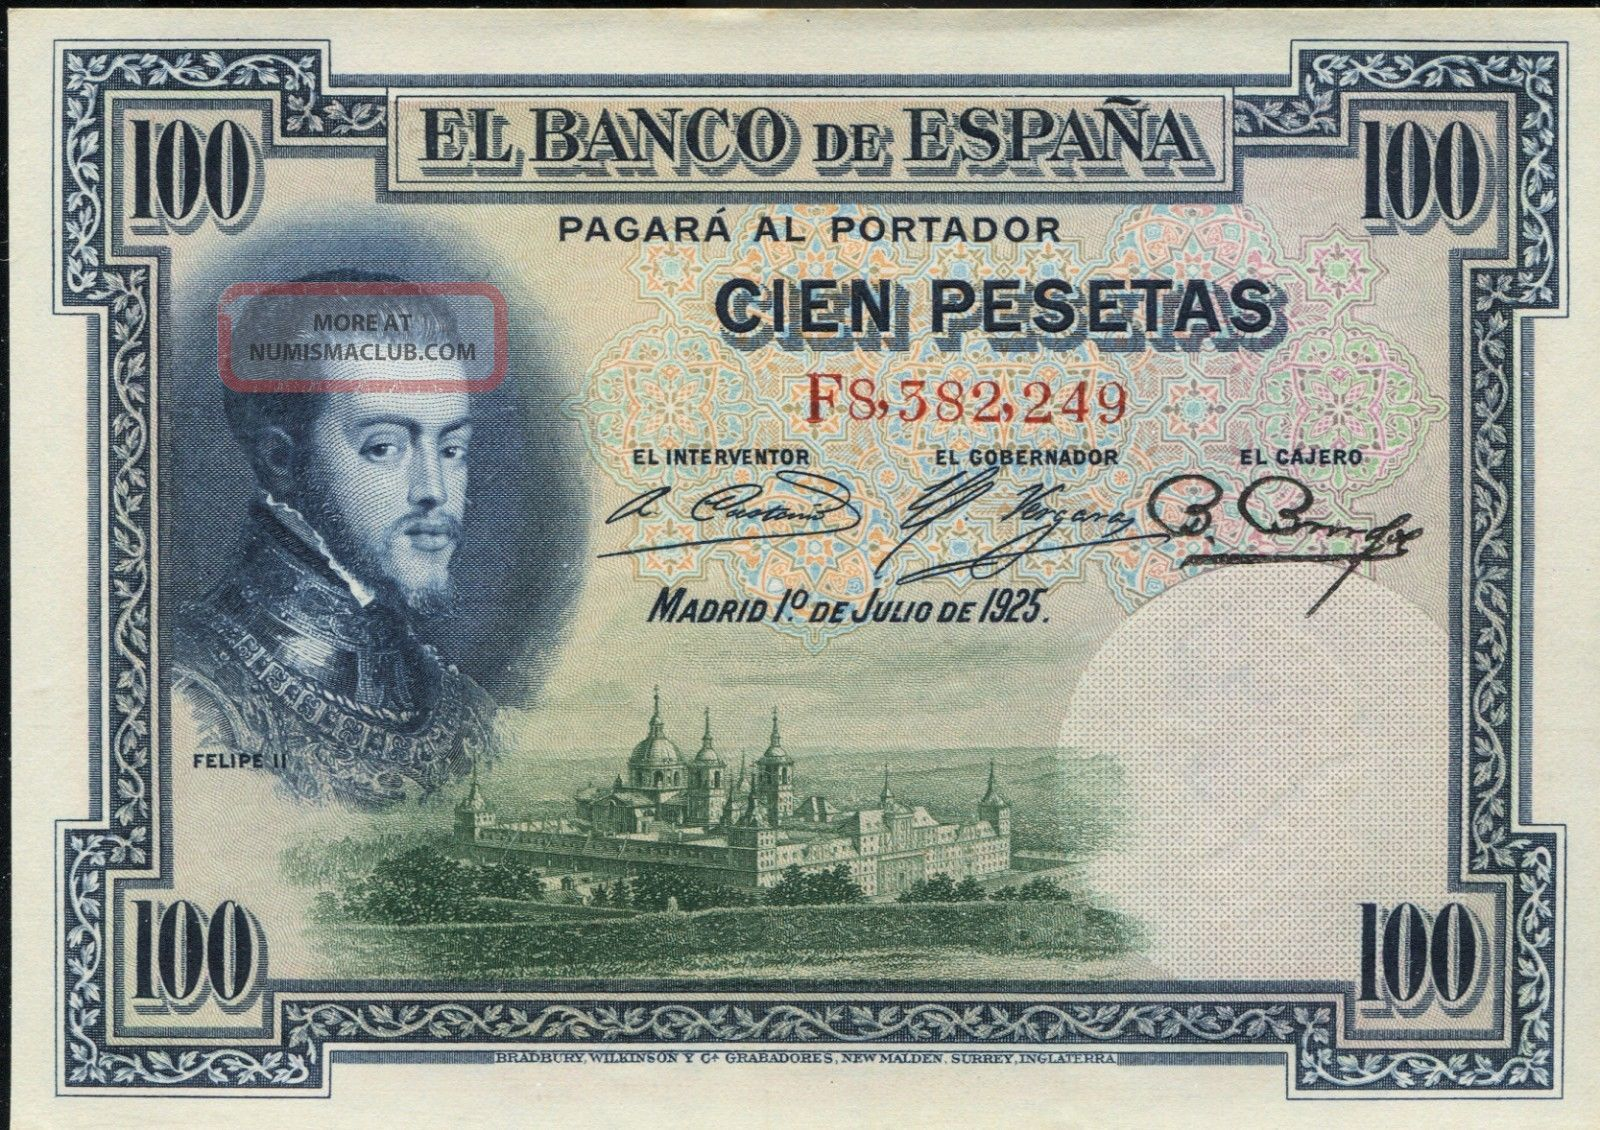 Spain P - 69c El Banco De Espana 100 Pesetas Unc Europe photo